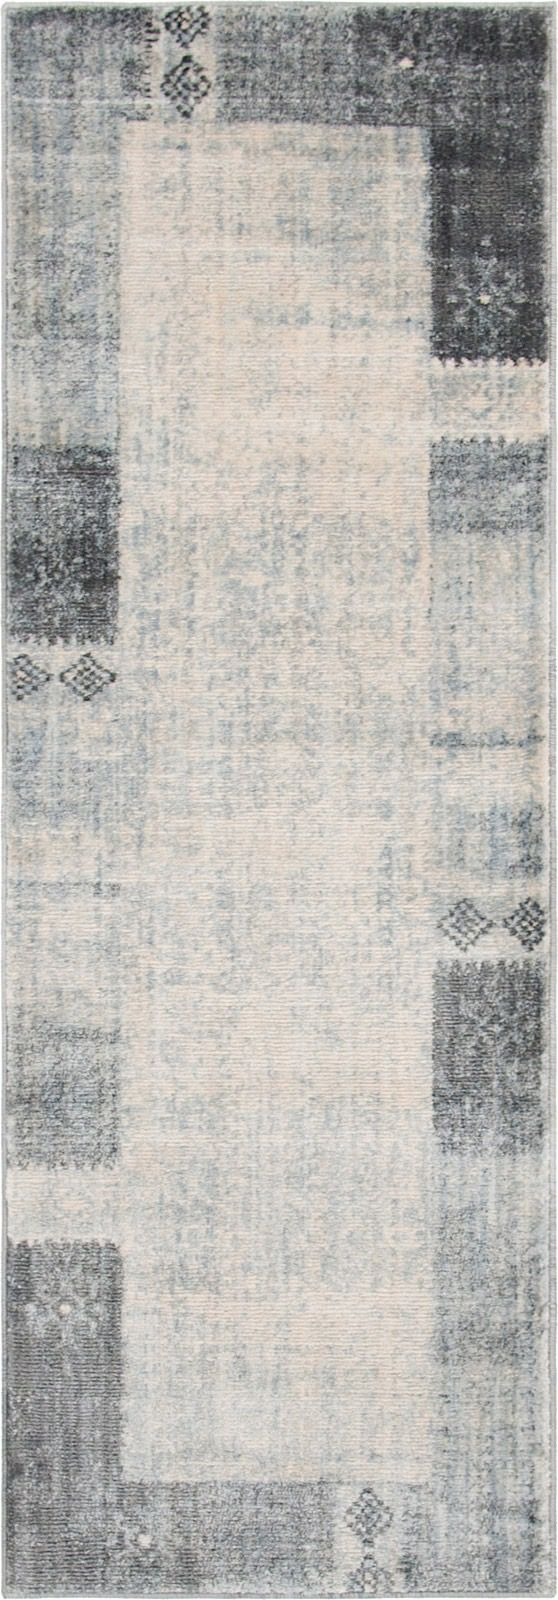 theia contemporary area rug collection